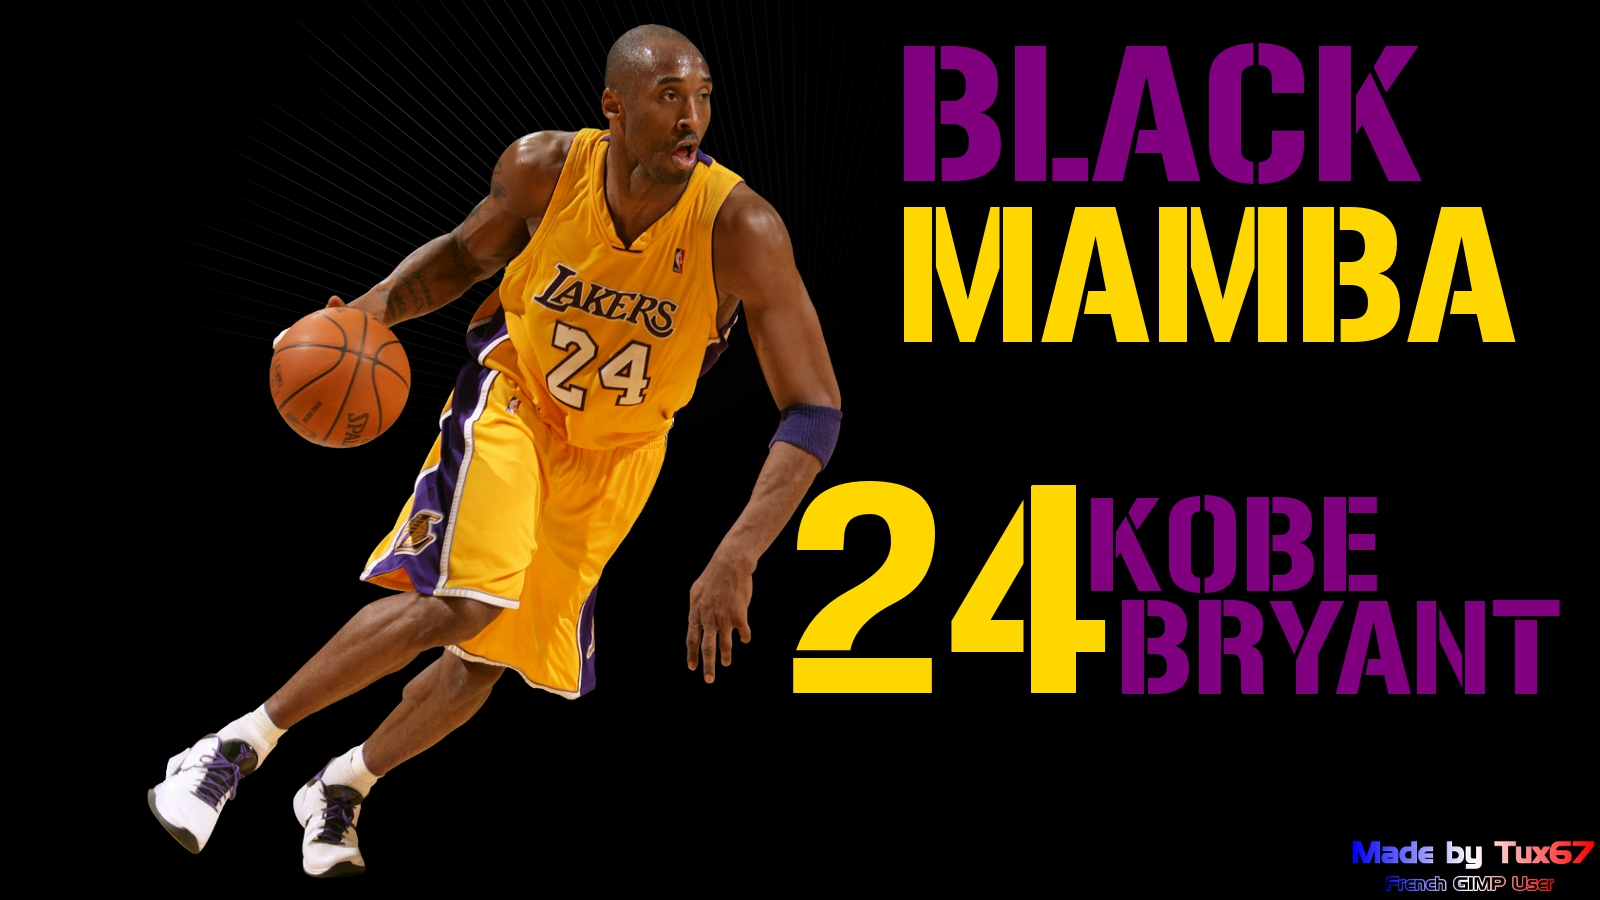 Free kobe bryant hd wallpapers - Kobe bryant wallpaper free download ...